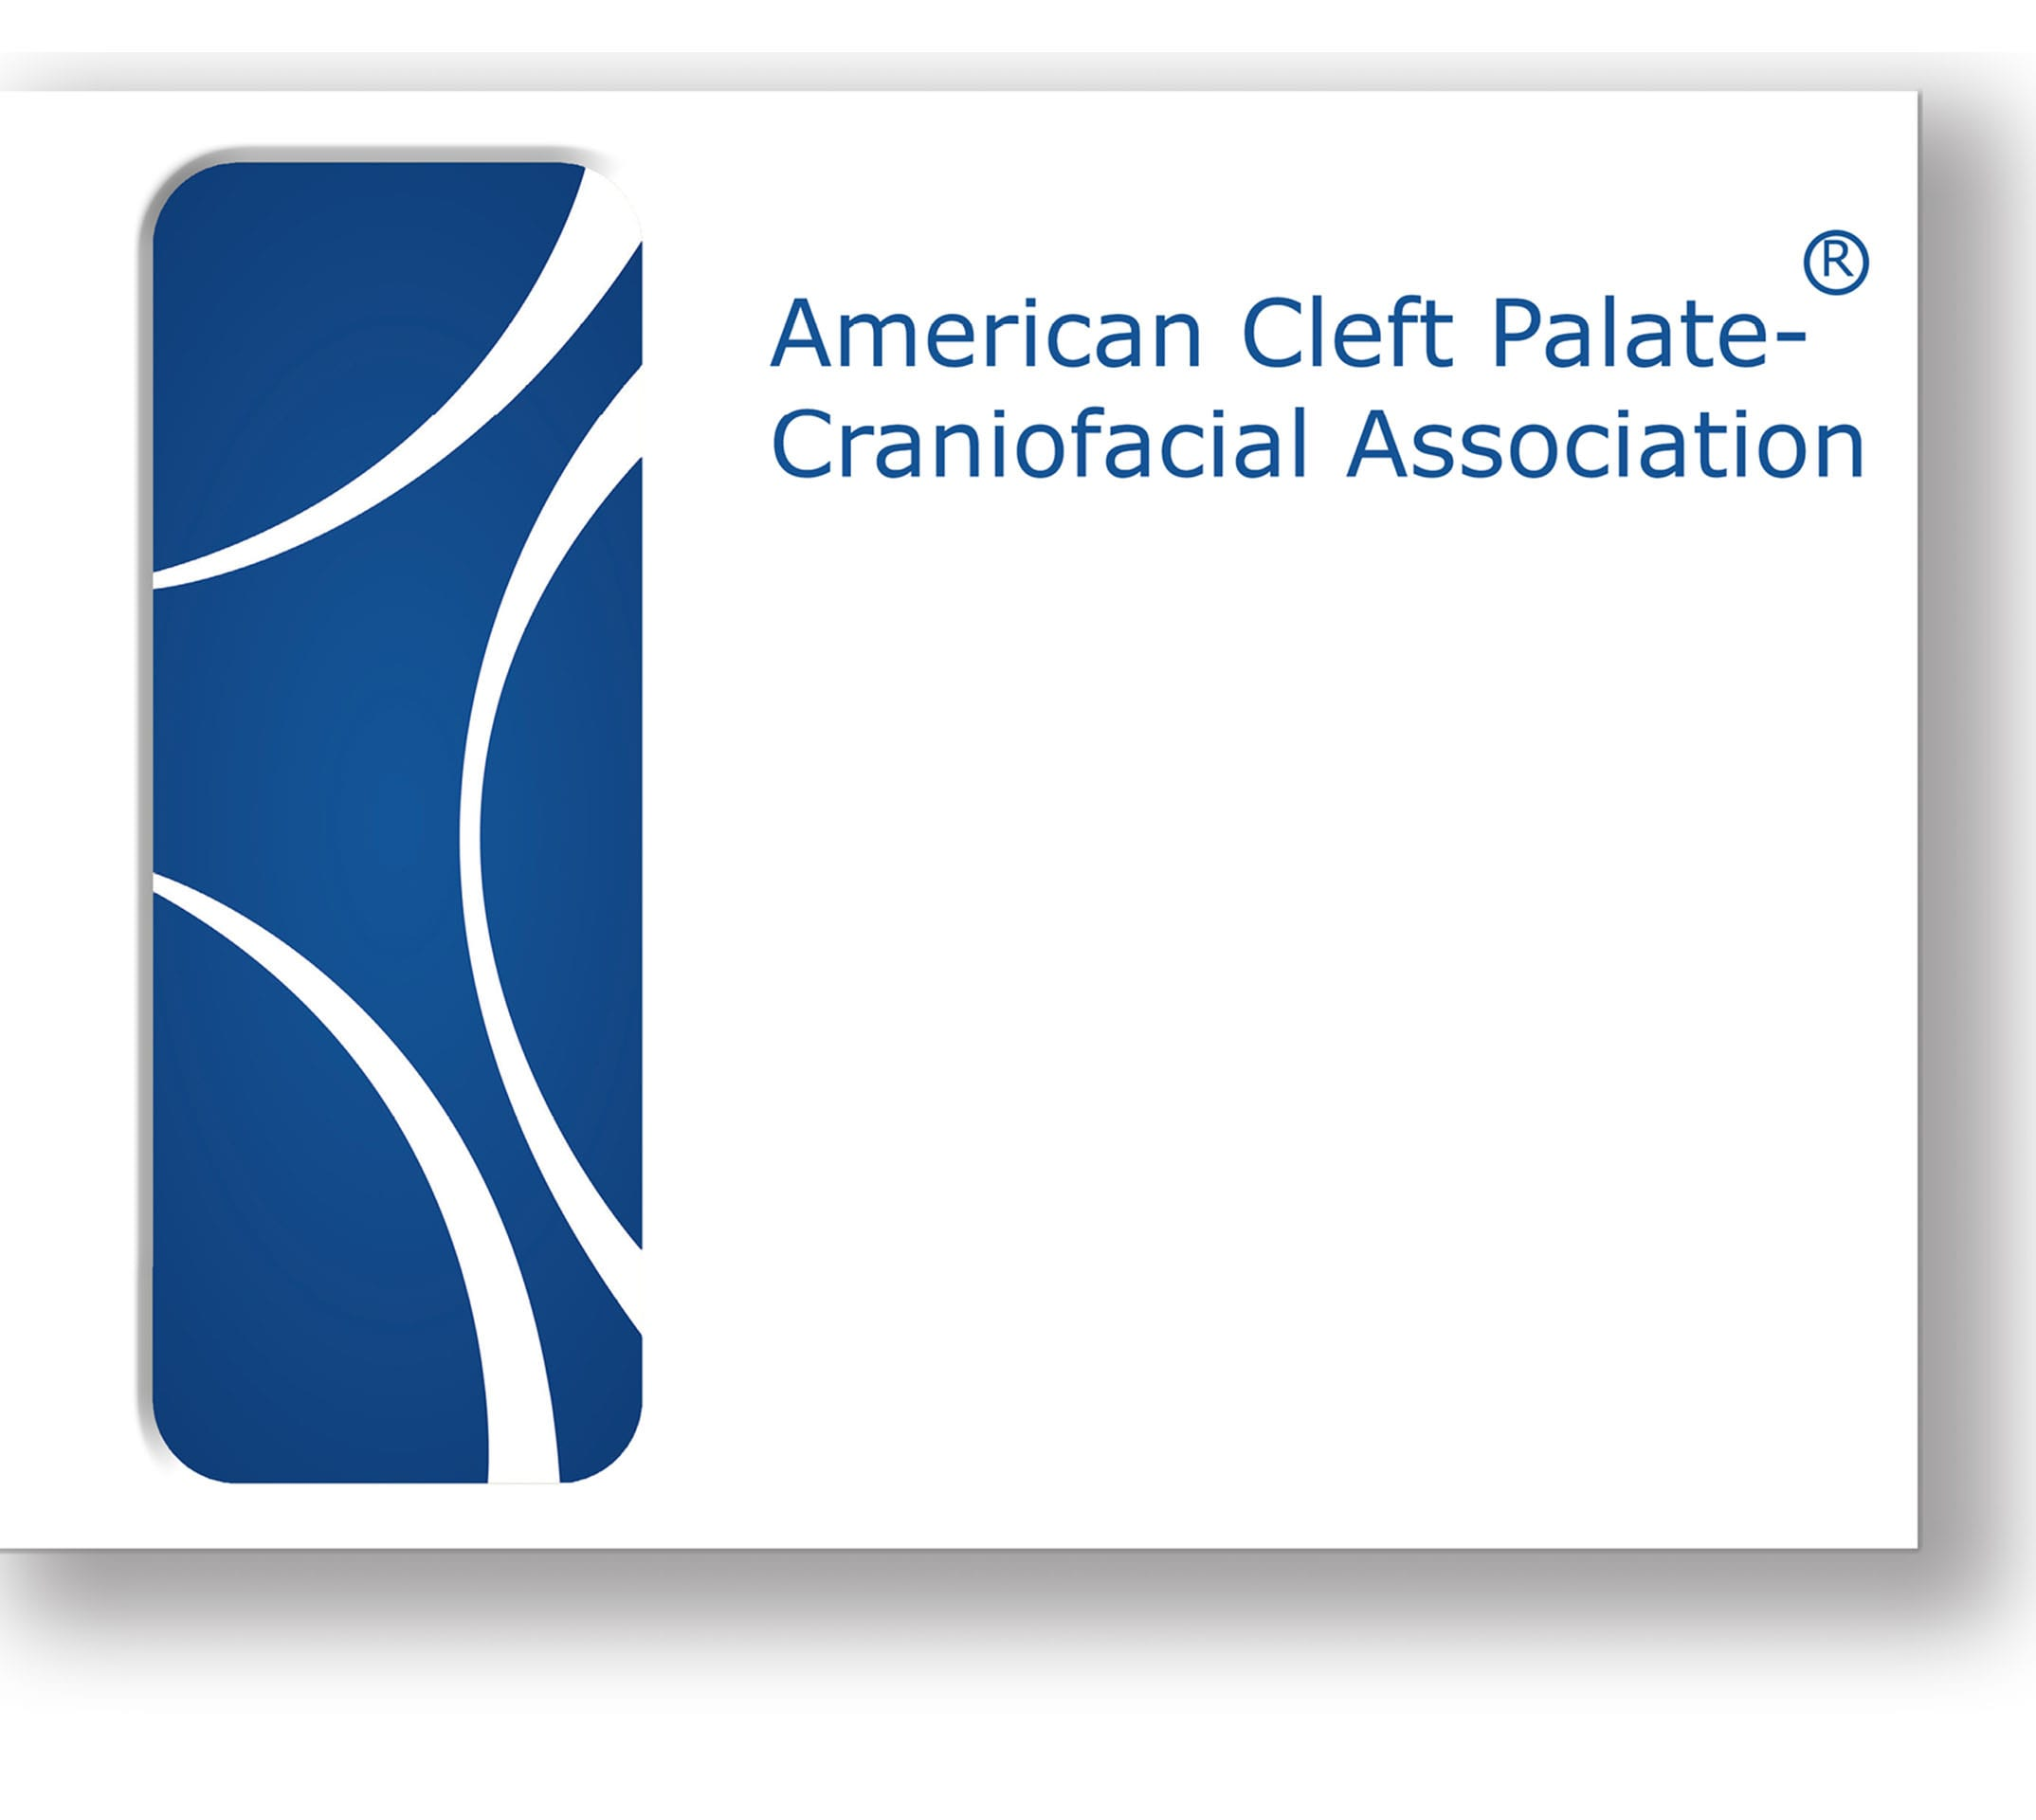 American Cleft Palate-Craniofacial Association